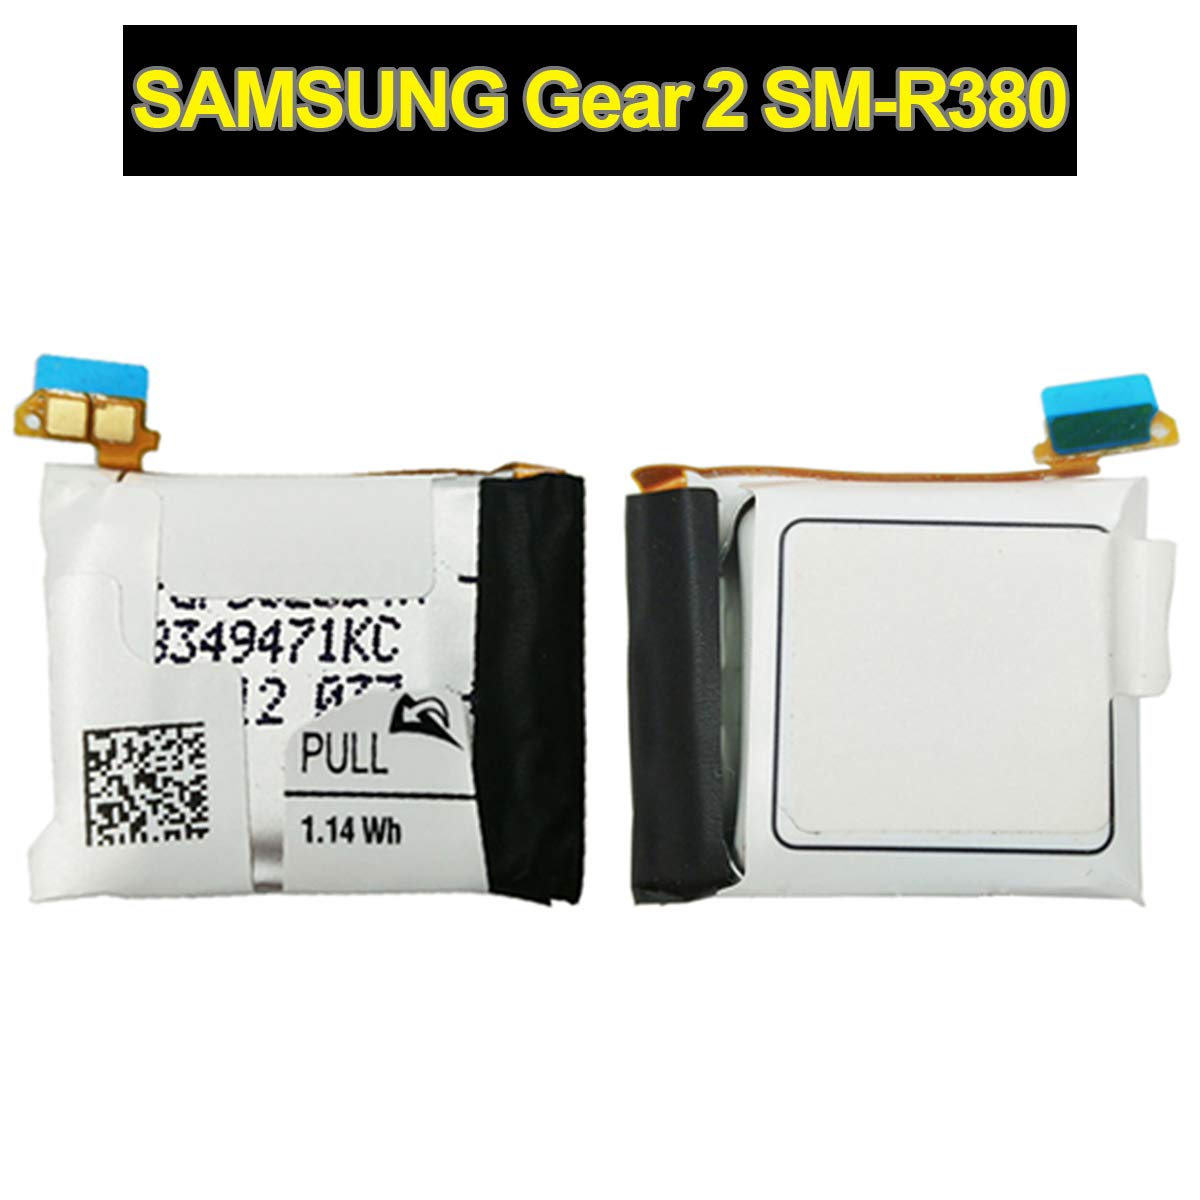 E-yiiviil Compatible with SM-R380 Smart watch battery Replacement Samsung Galaxy Gear 2 Gear 2 Neo SM-R380 SM-R381